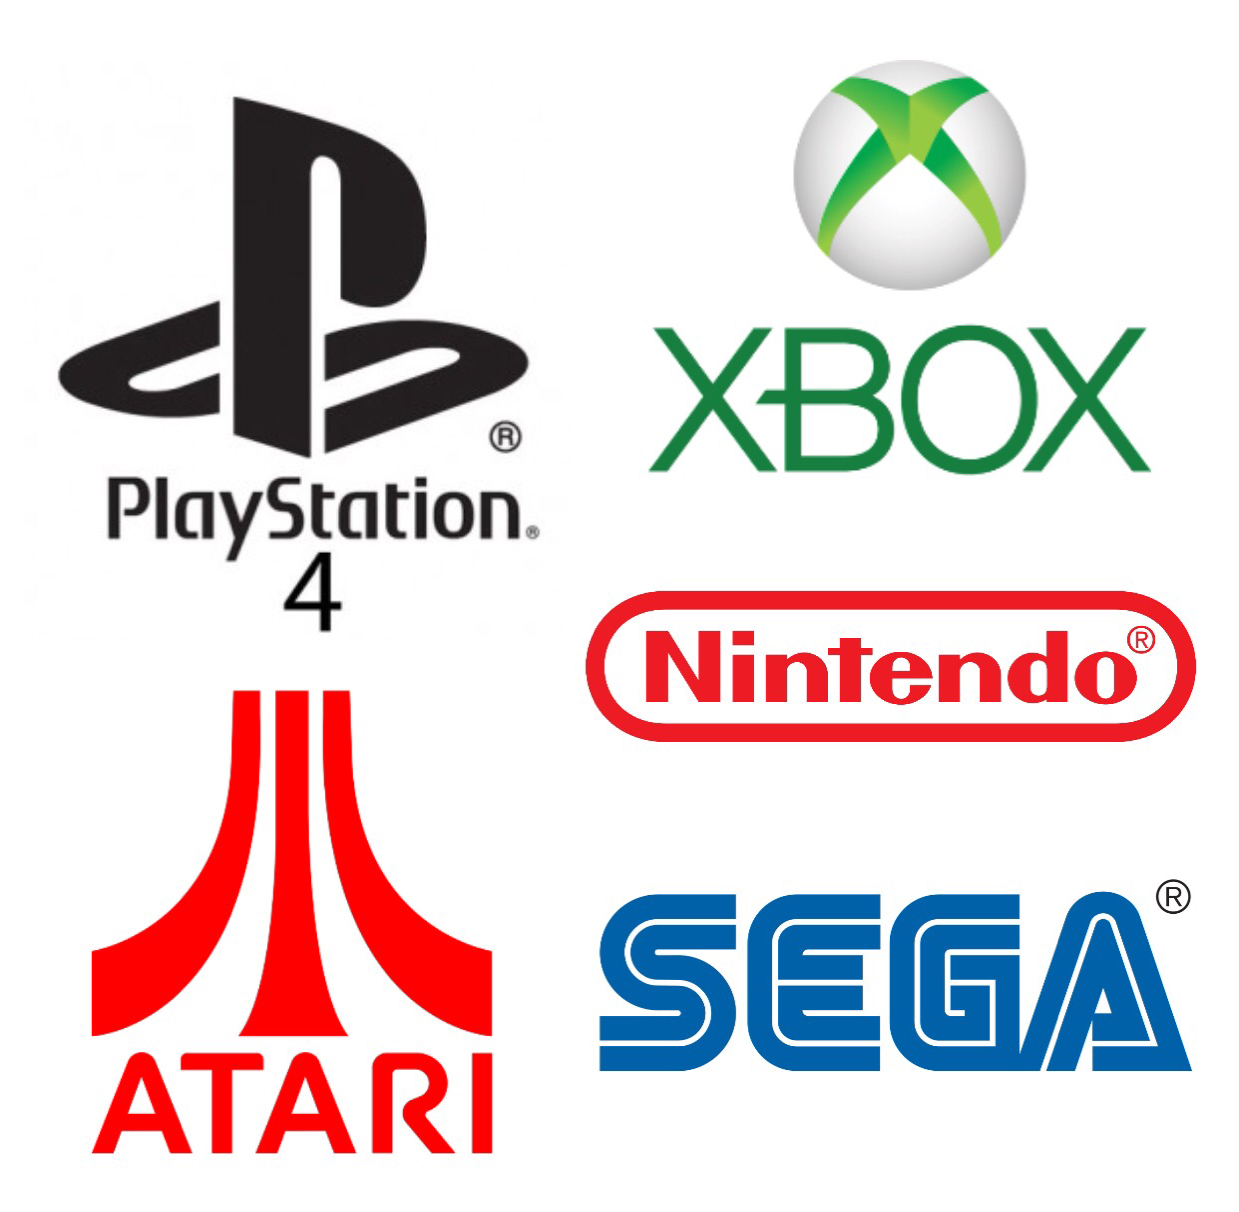 Sony PS4, Microsoft Xbox, Nintendo, Atari, and Sega!